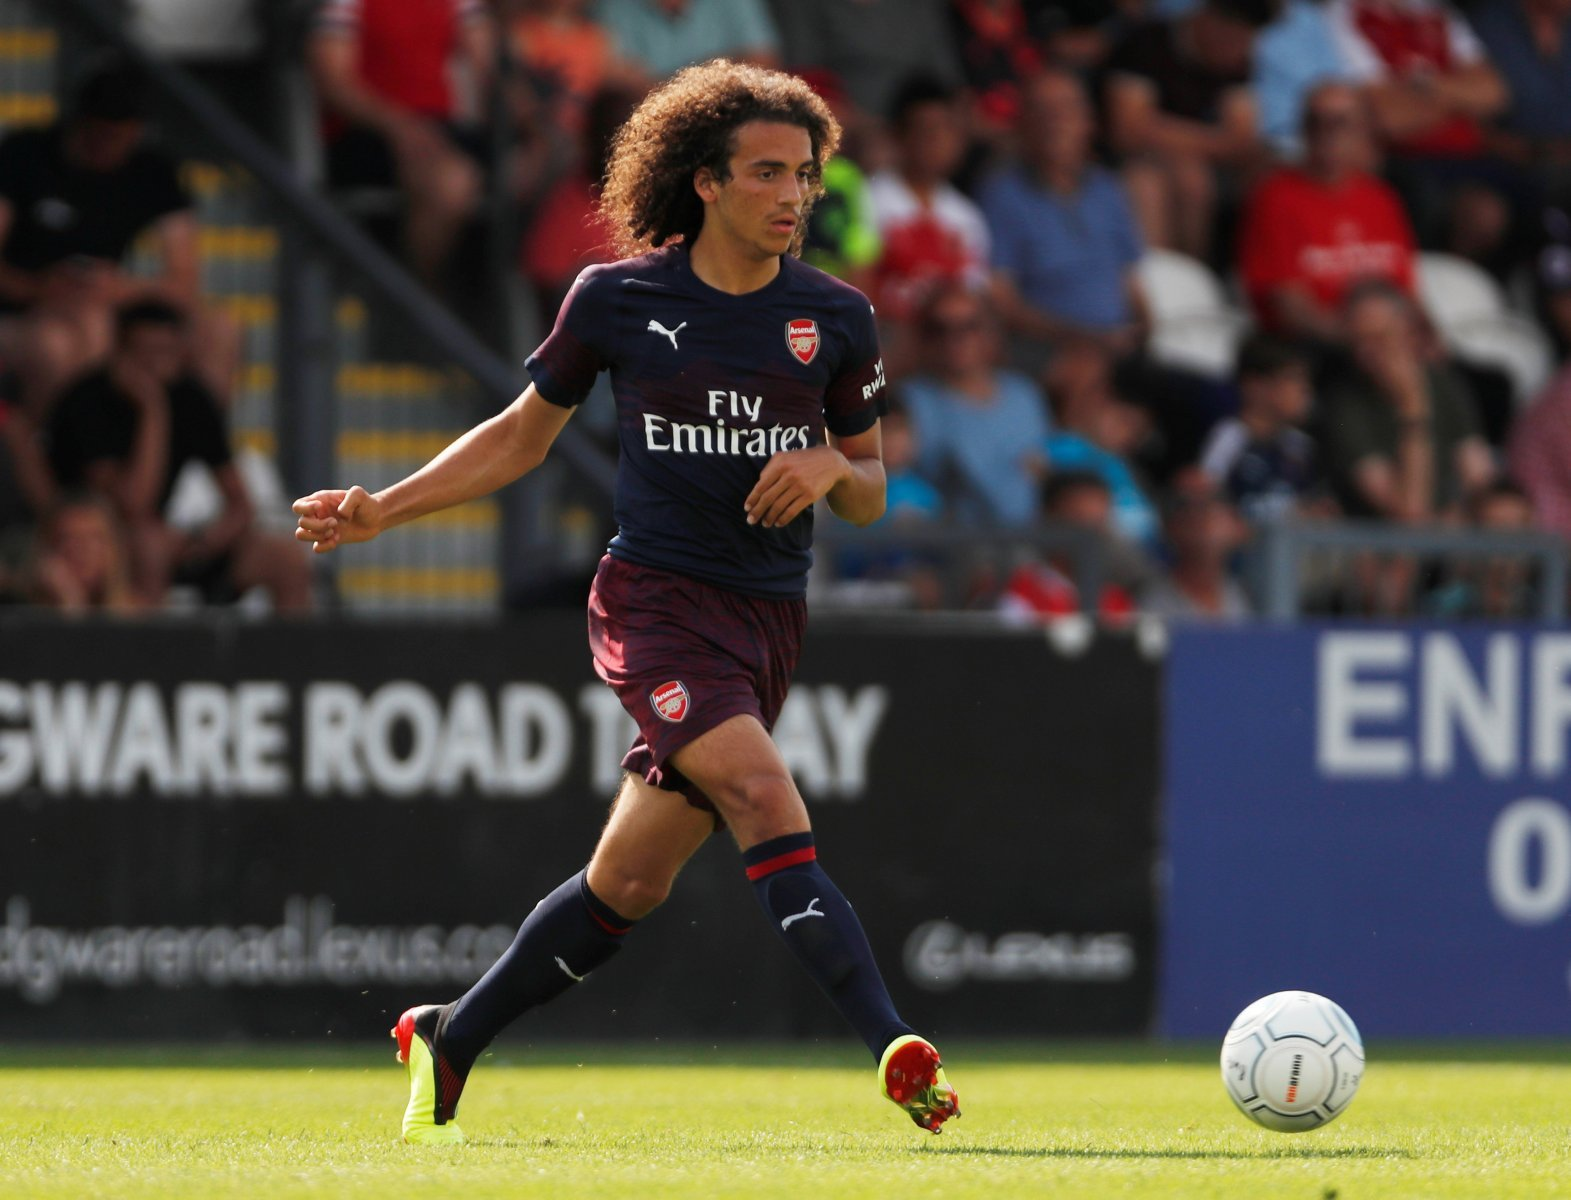 Arsenal fans on Twitter are calling for Guendouzi to start on Sunday